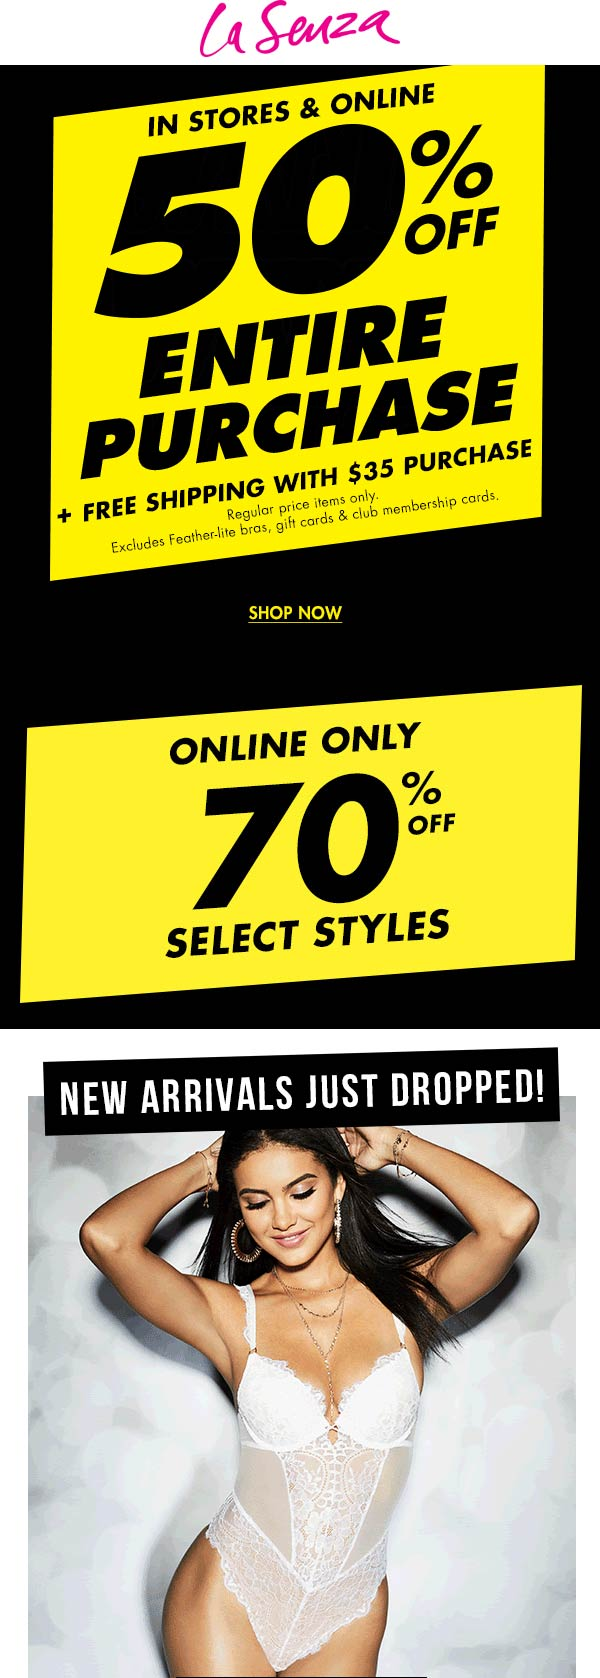 La Senza Coupon January 2020 50% off everything at La Senza, ditto online